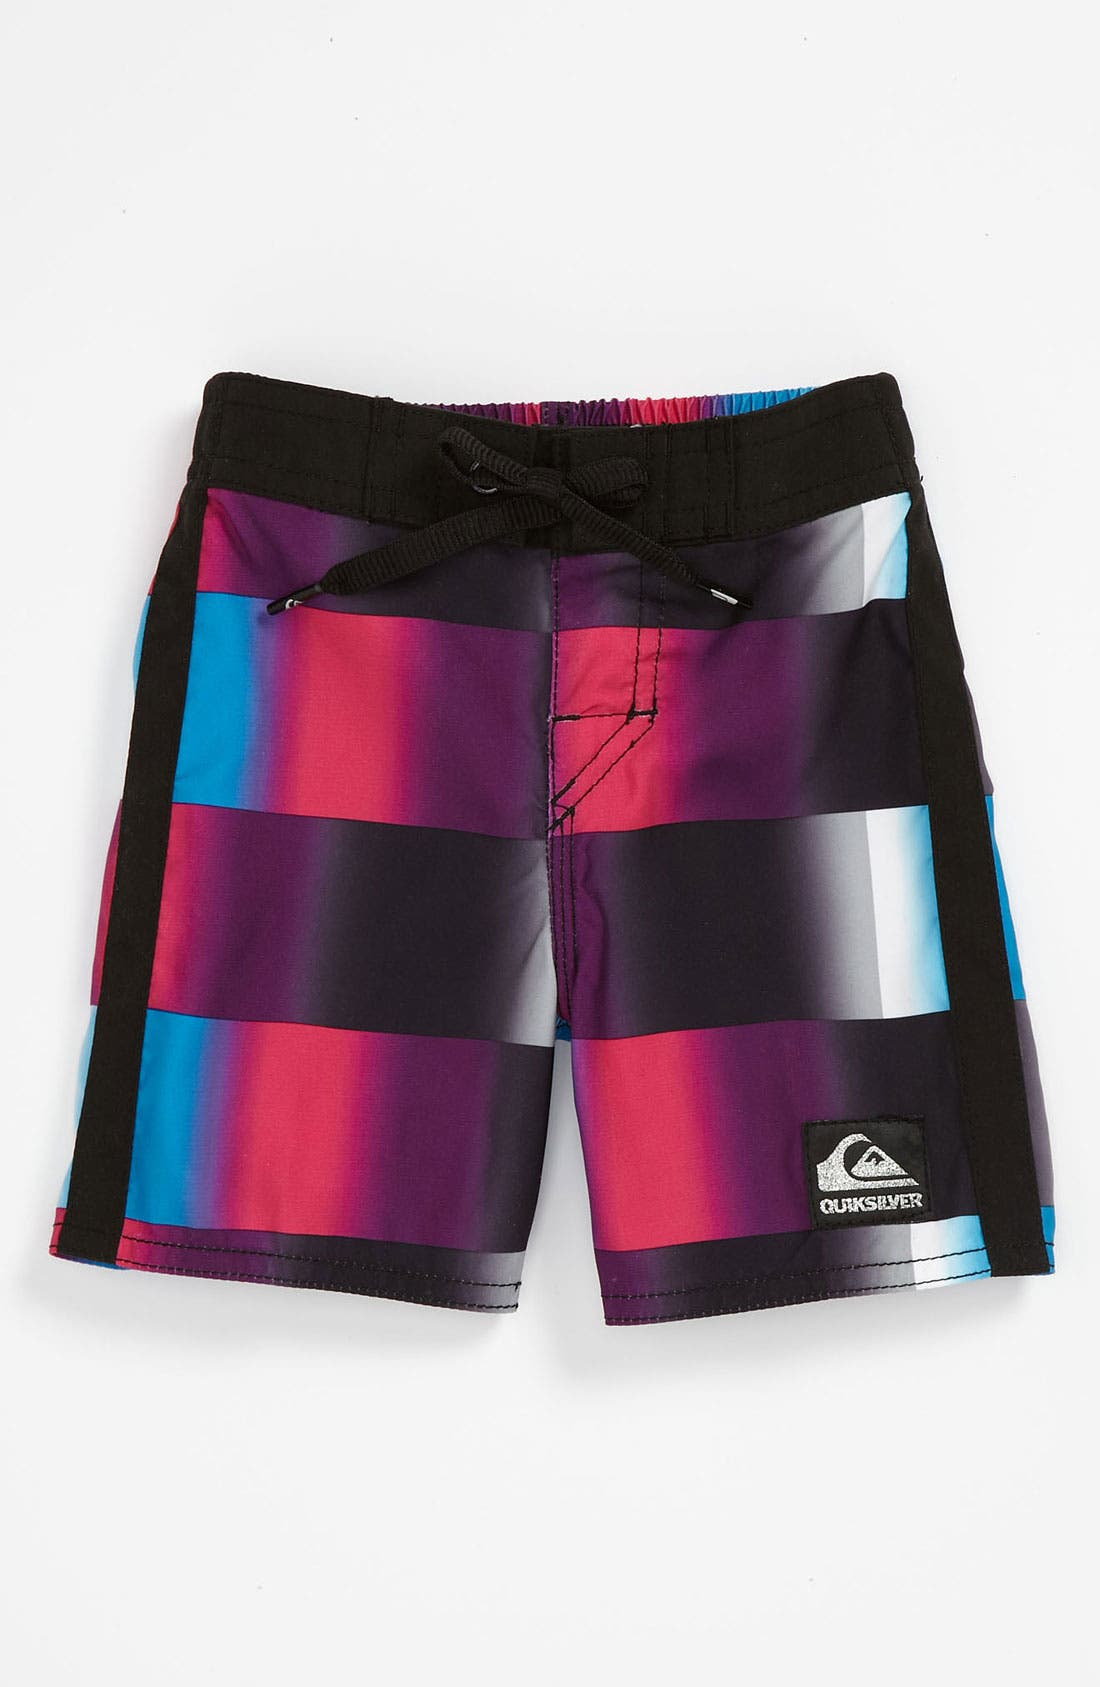 Alternate Image 1 Selected - Quiksilver 'Get Rad' Board Shorts (Baby)